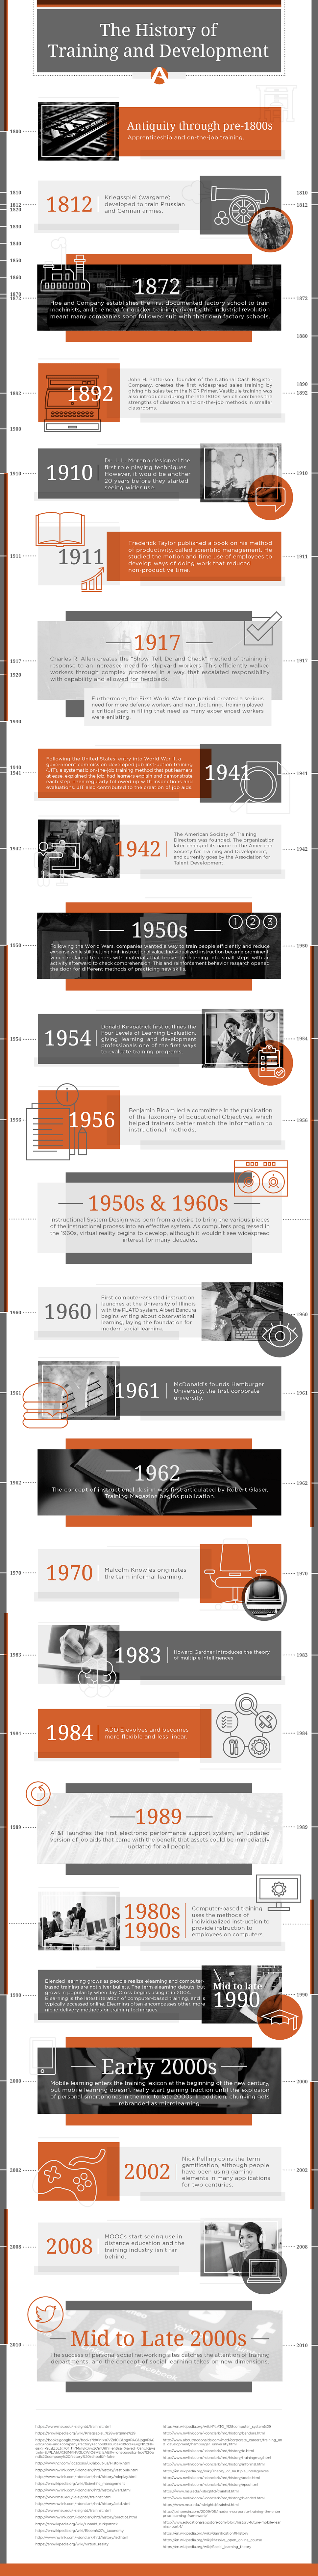 The History of Training and Development Infographic